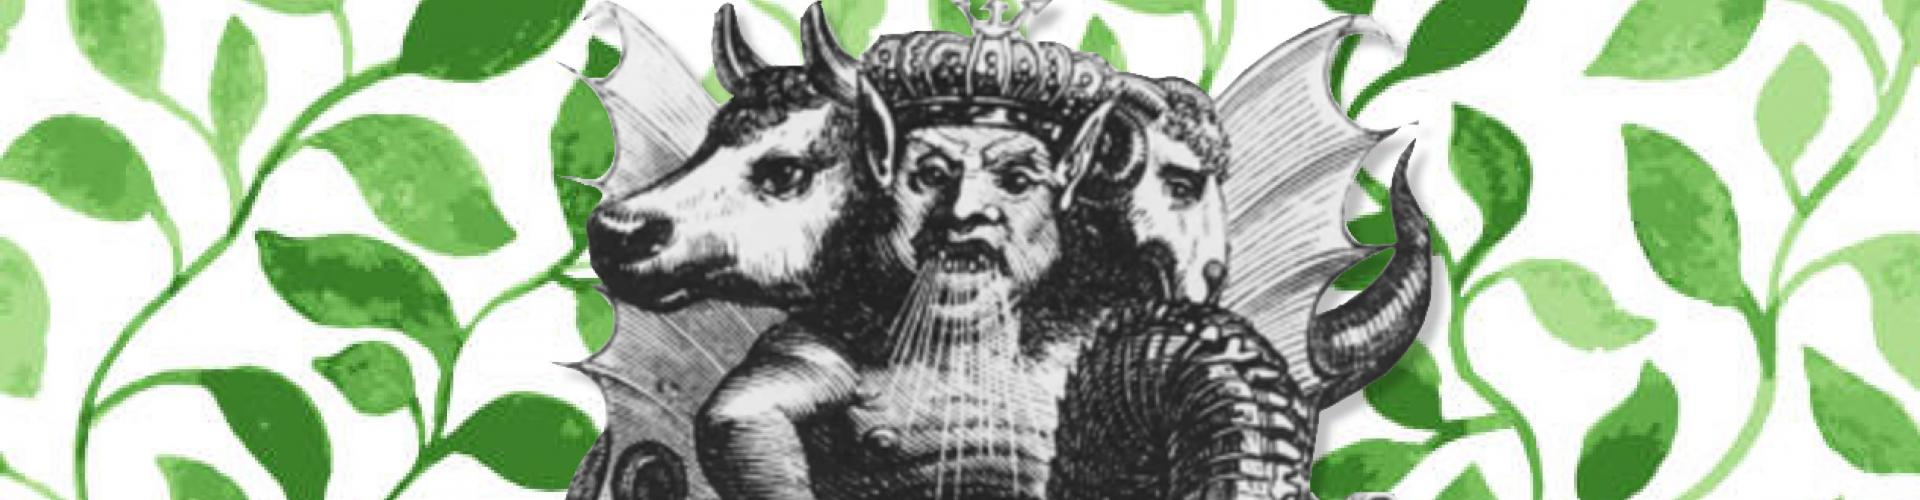 black and white illustration of demon atop green vines